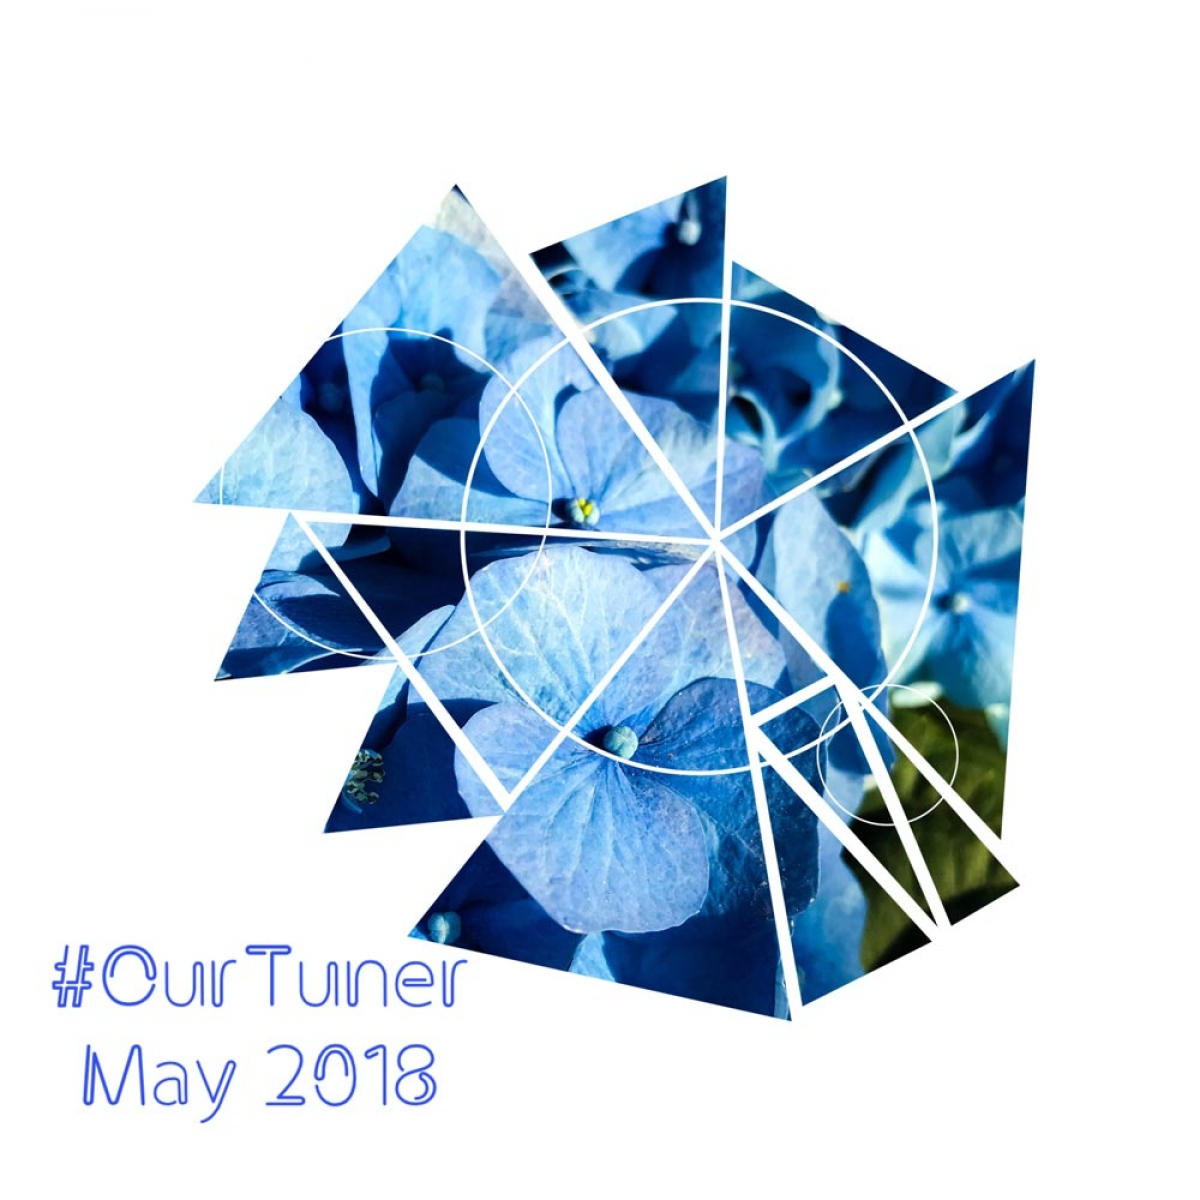 #Our TUNEr - May 2018